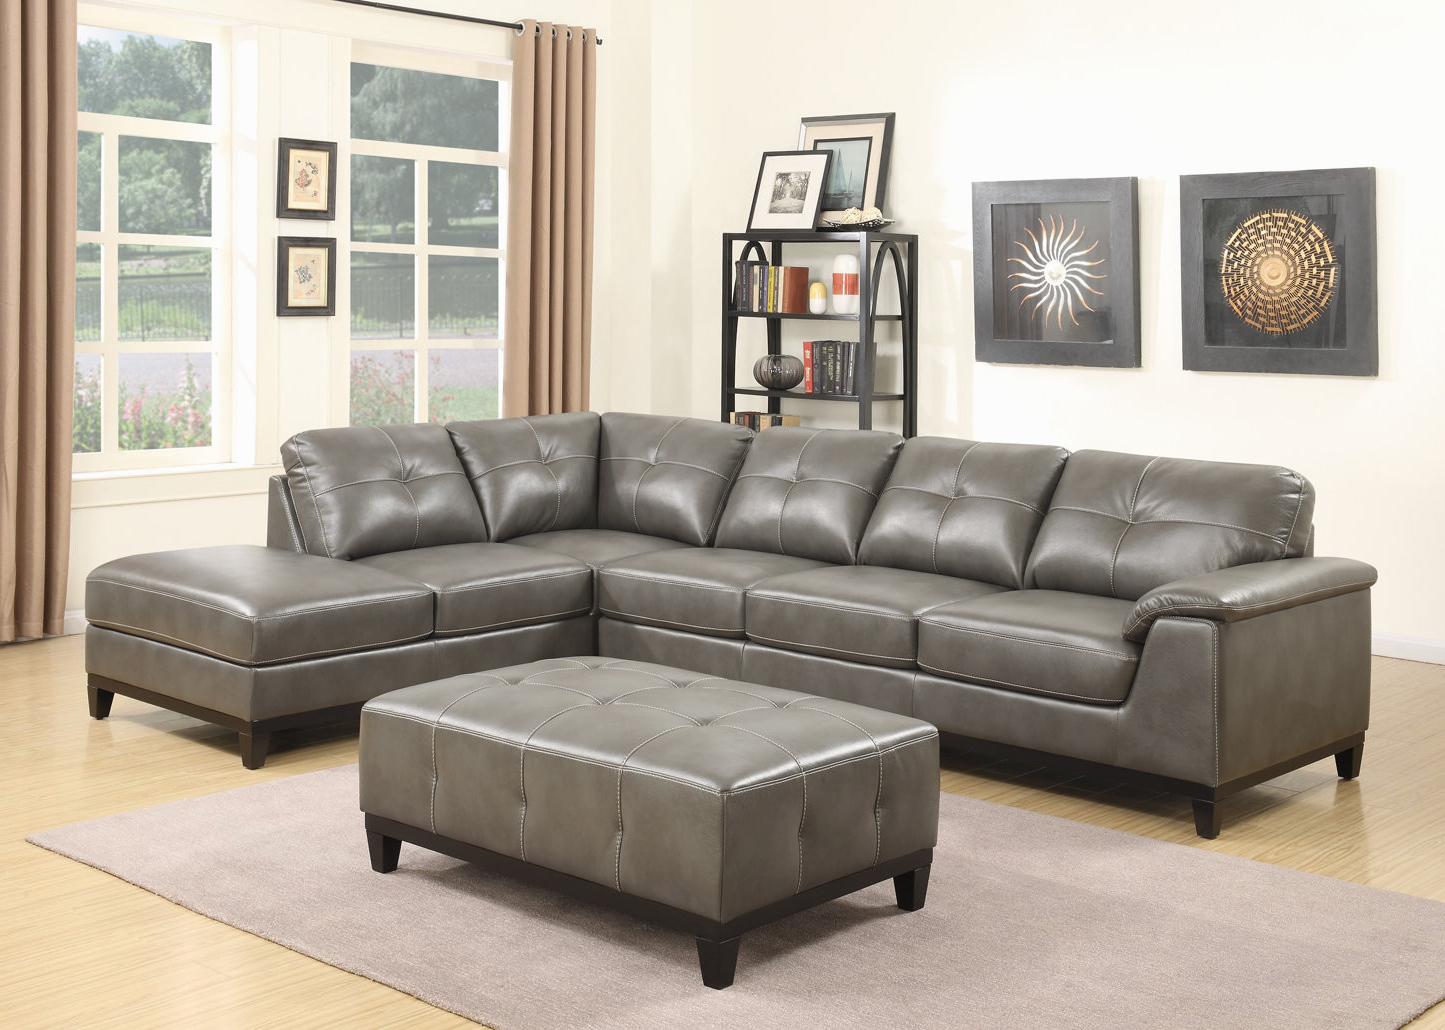 Fashionable Aquarius Light Grey 2 Piece Sectionals With Laf Chaise Regarding Living Room Sofa With Chaise Beautiful Trent Austin Design Lonato (Gallery 17 of 20)